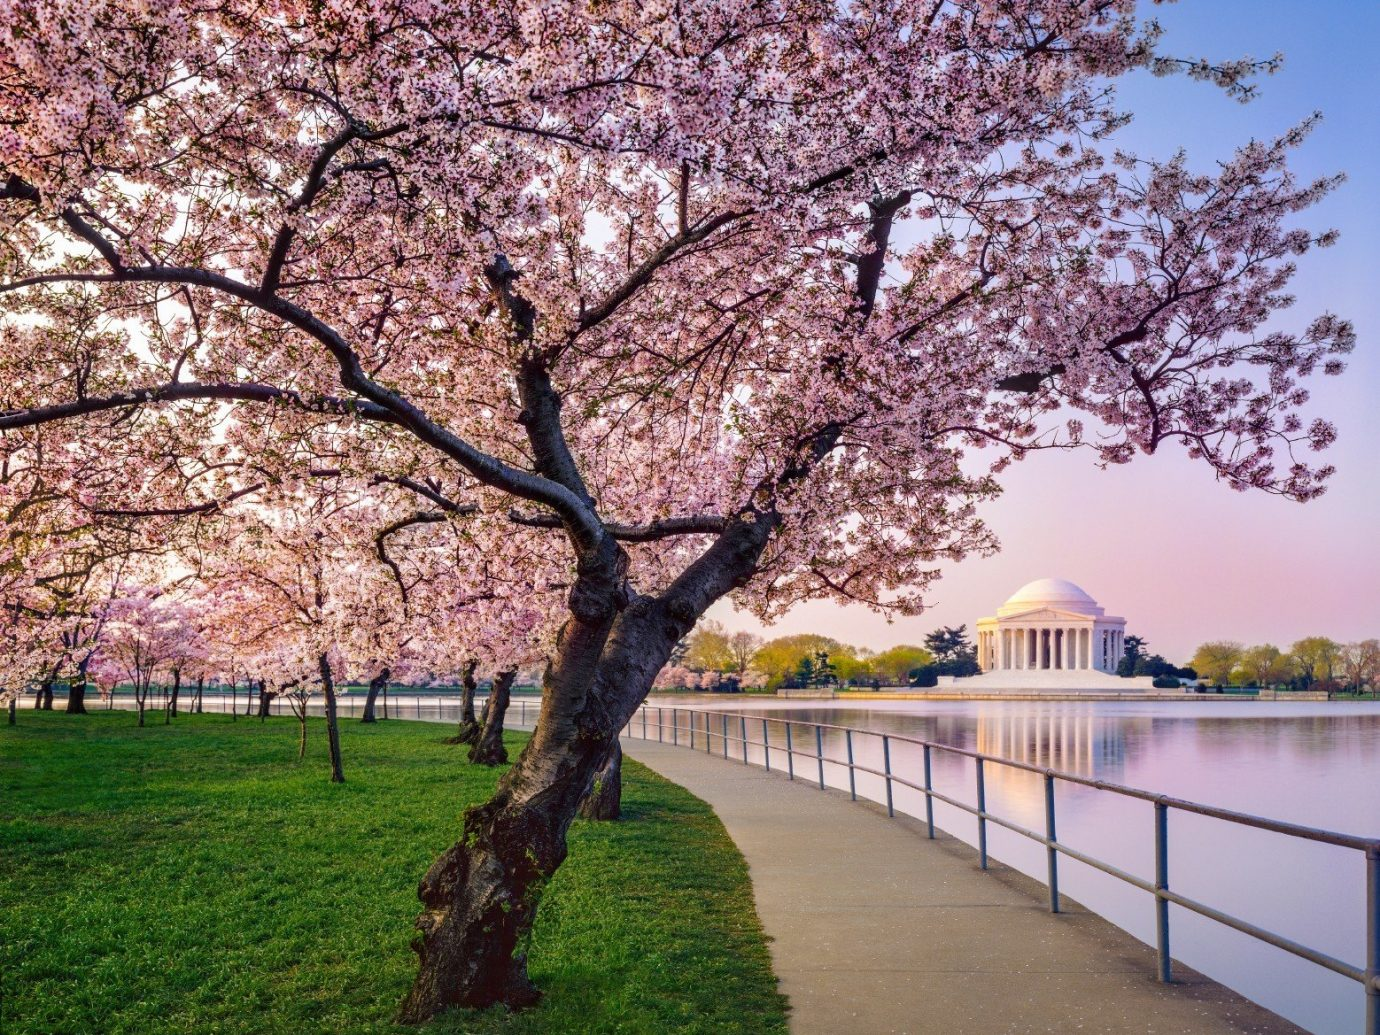 Travel Tips tree grass outdoor sky flower plant blossom cherry blossom spring park branch oak surrounded